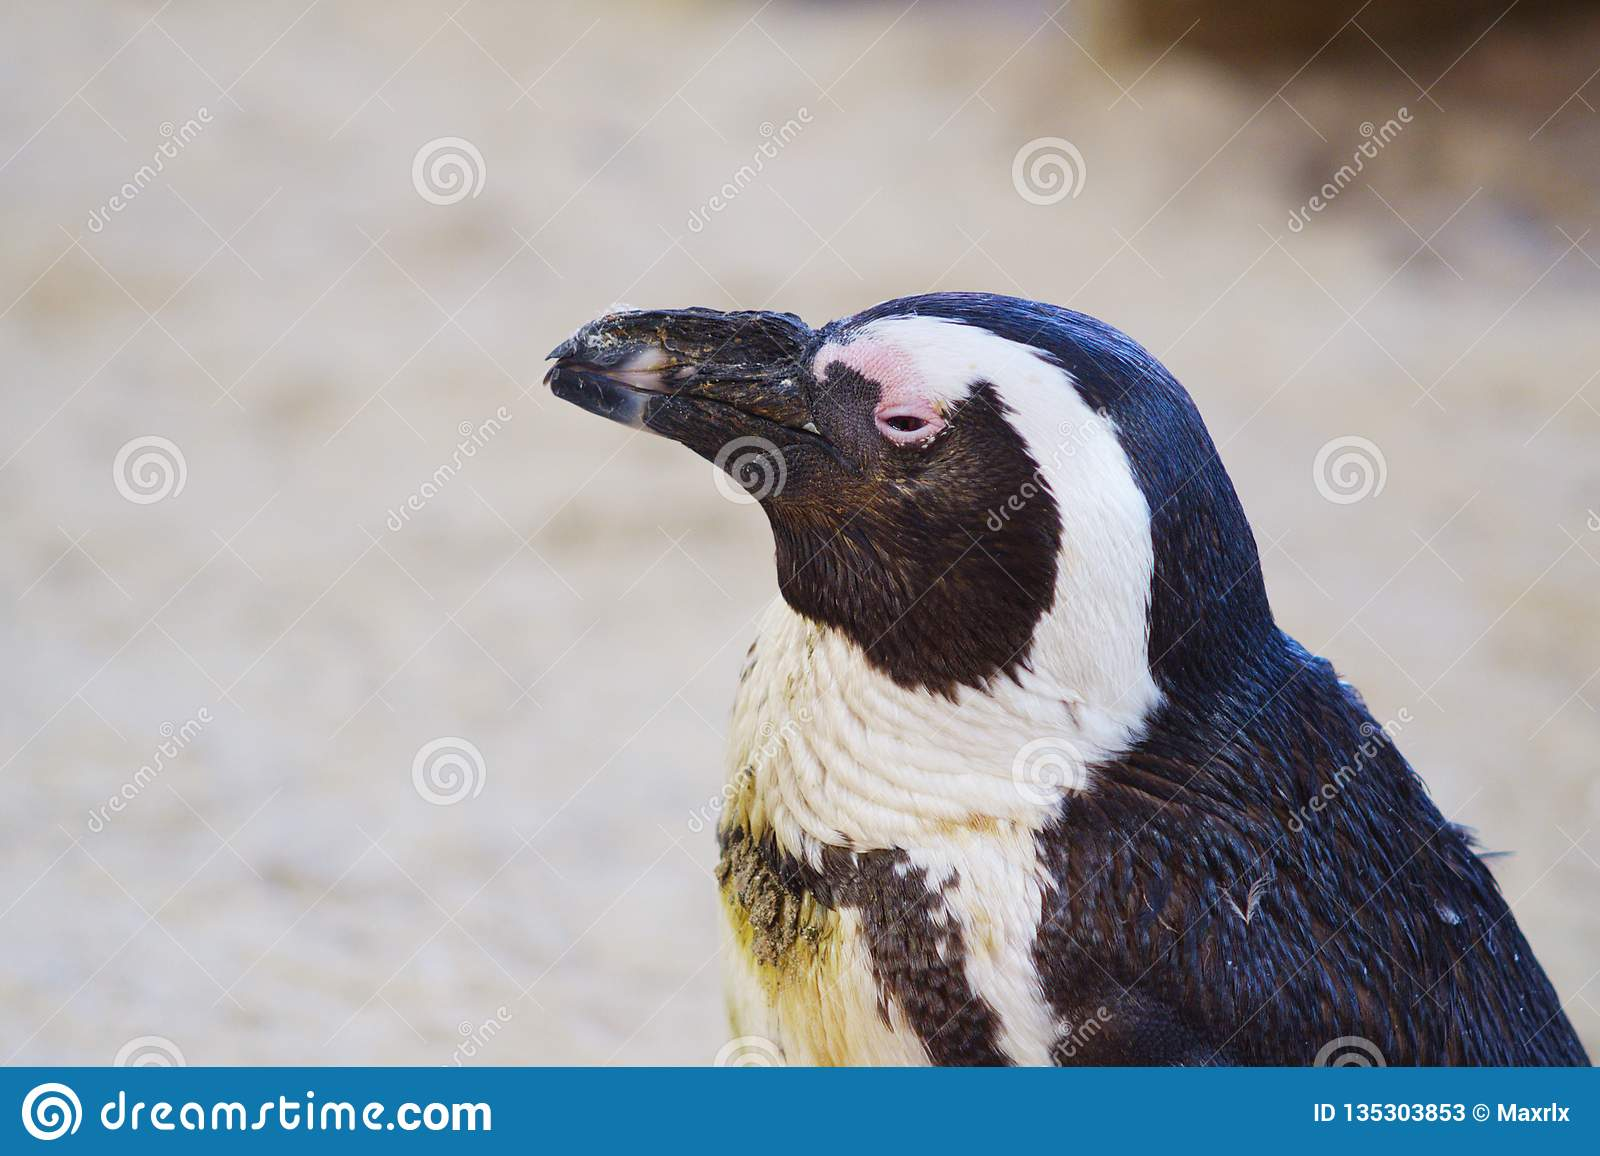 Closeup of African Penguin with semi closed eyes against blurred background